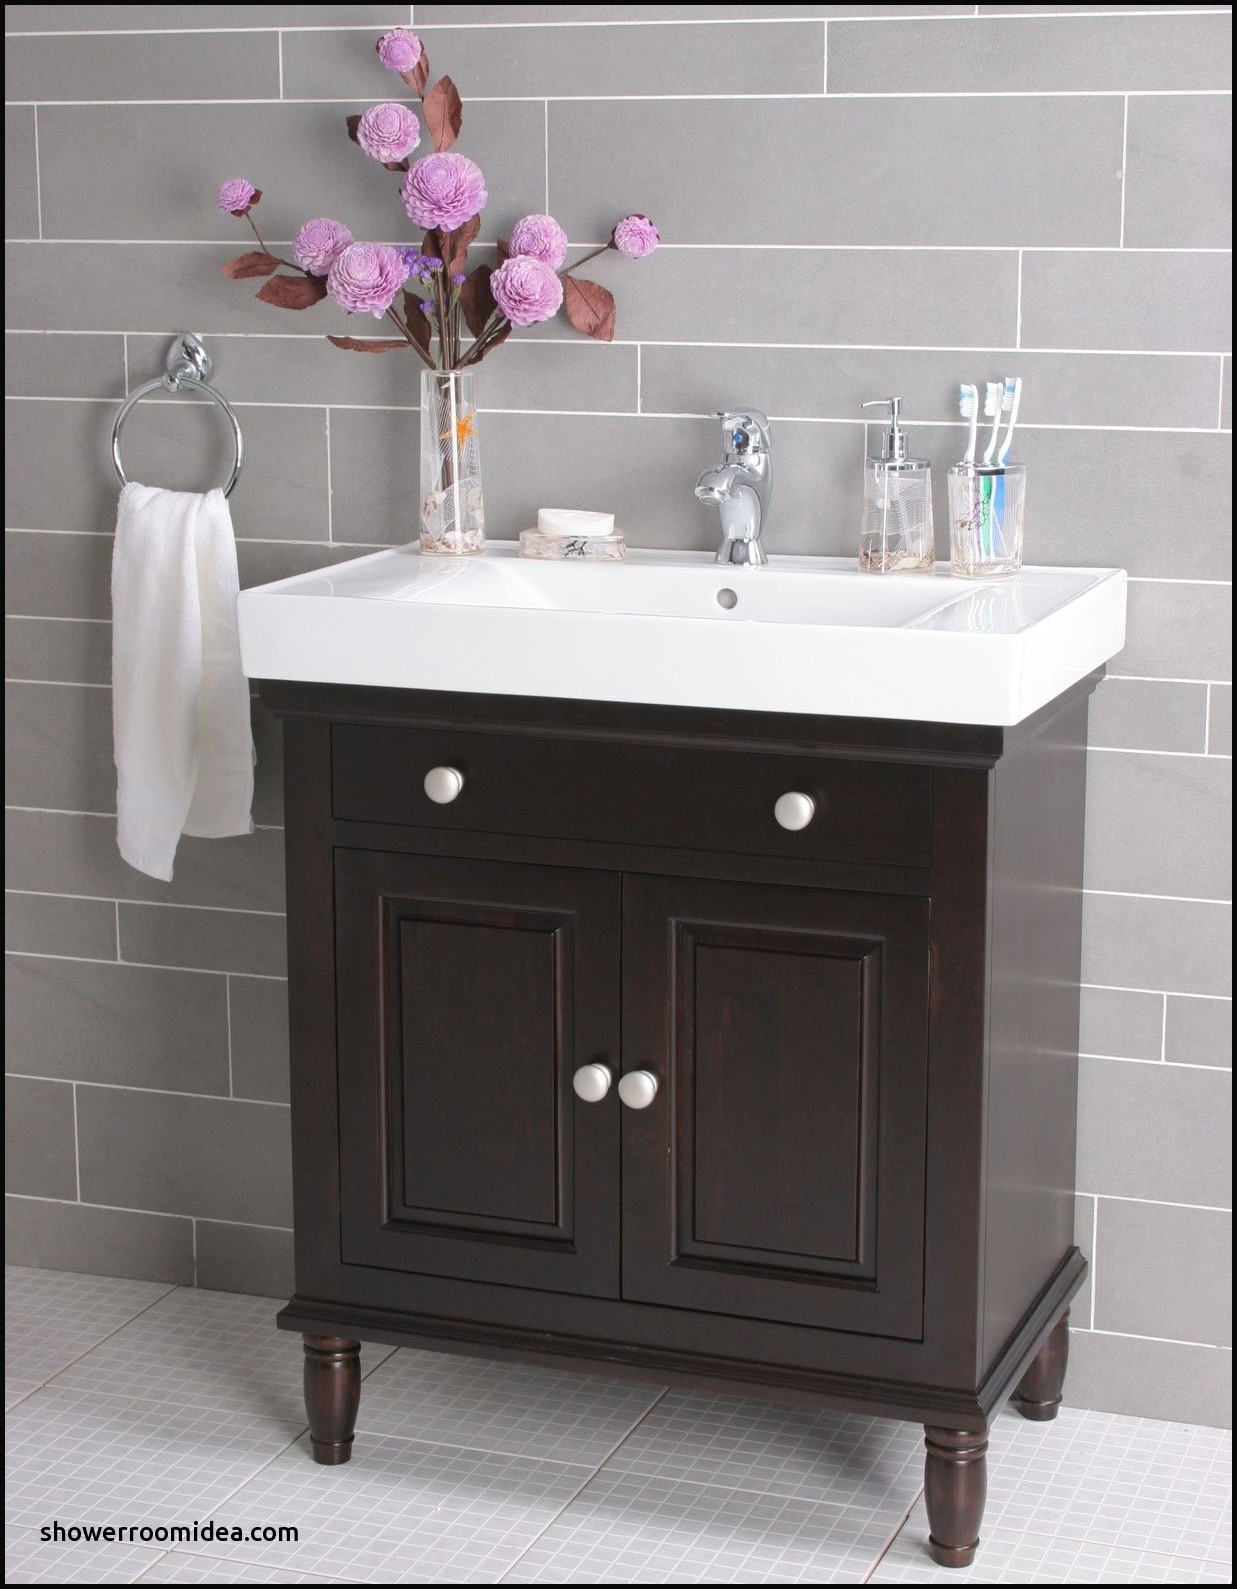 Superb Bathroom Vanities at Menards Wallpaper - Bathroom Design Ideas Gallery Image and Wallpaper